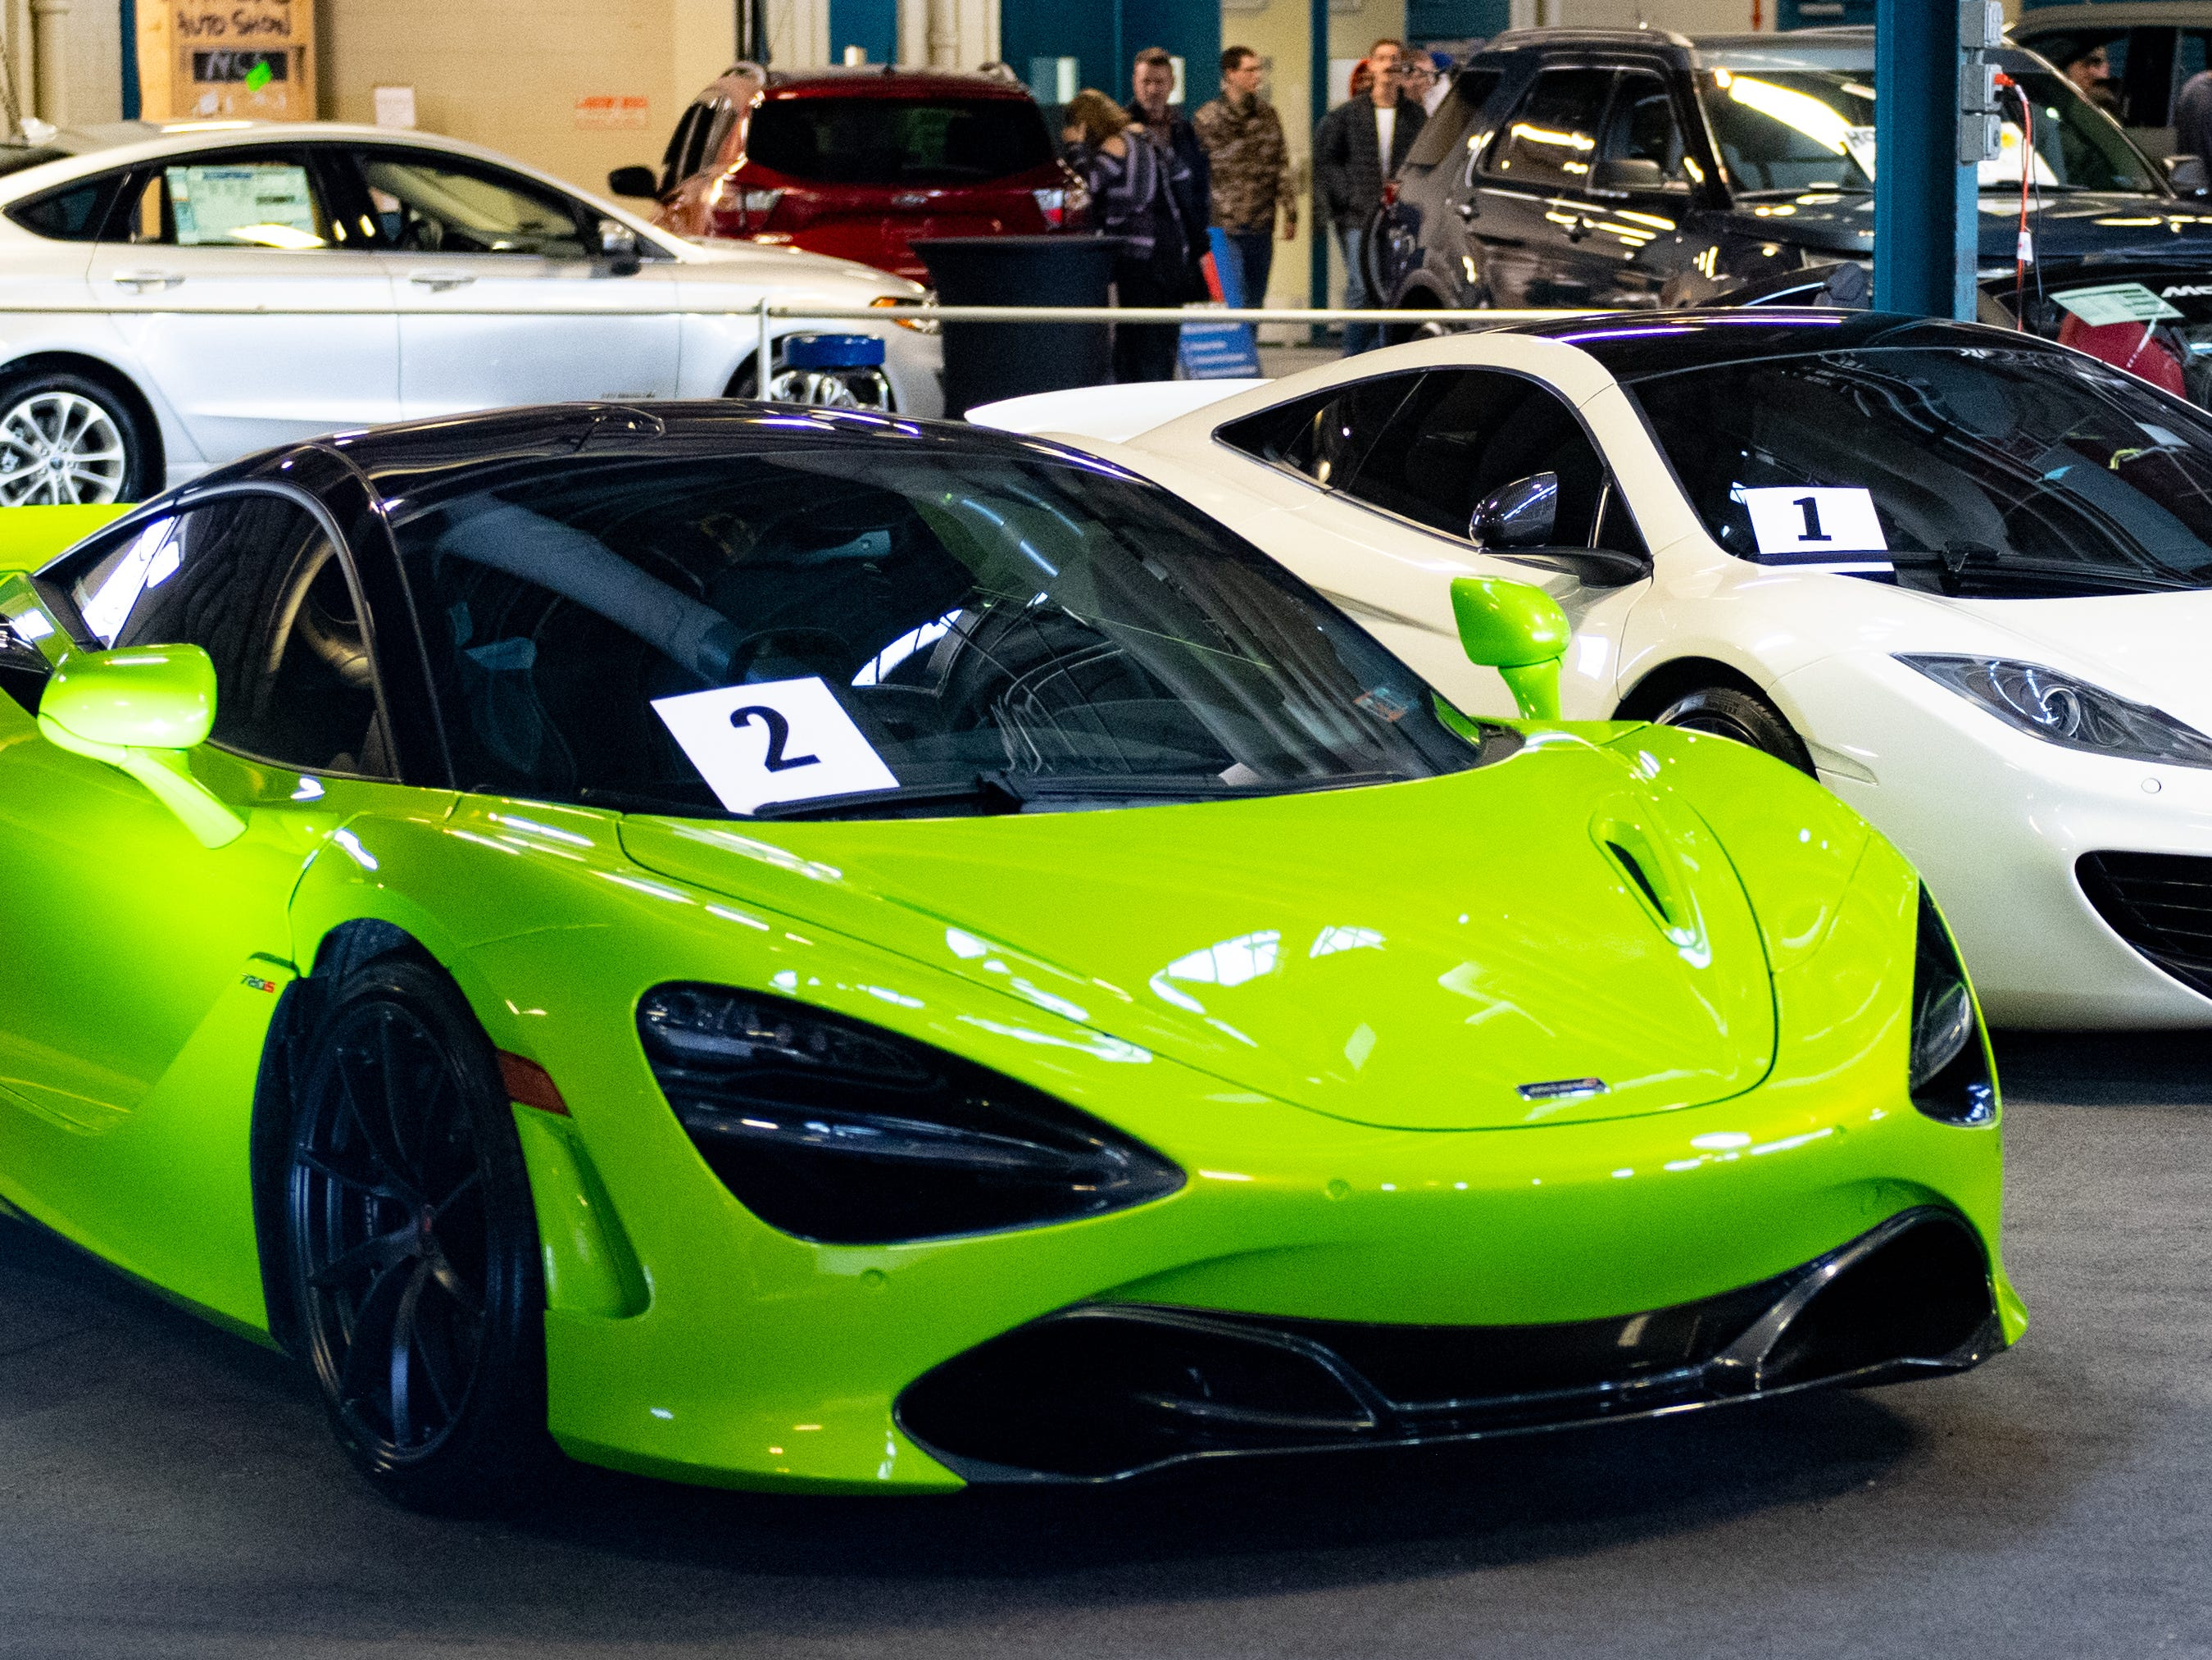 Super Cars are a popular exhibit at the 2019 Pennsylvania Auto Show, Saturday, January 26, 2019 at the Pennsylvania Farm Show Complex & Expo Center. The auto show continues on Sunday from 10 a.m. to 5 p.m.